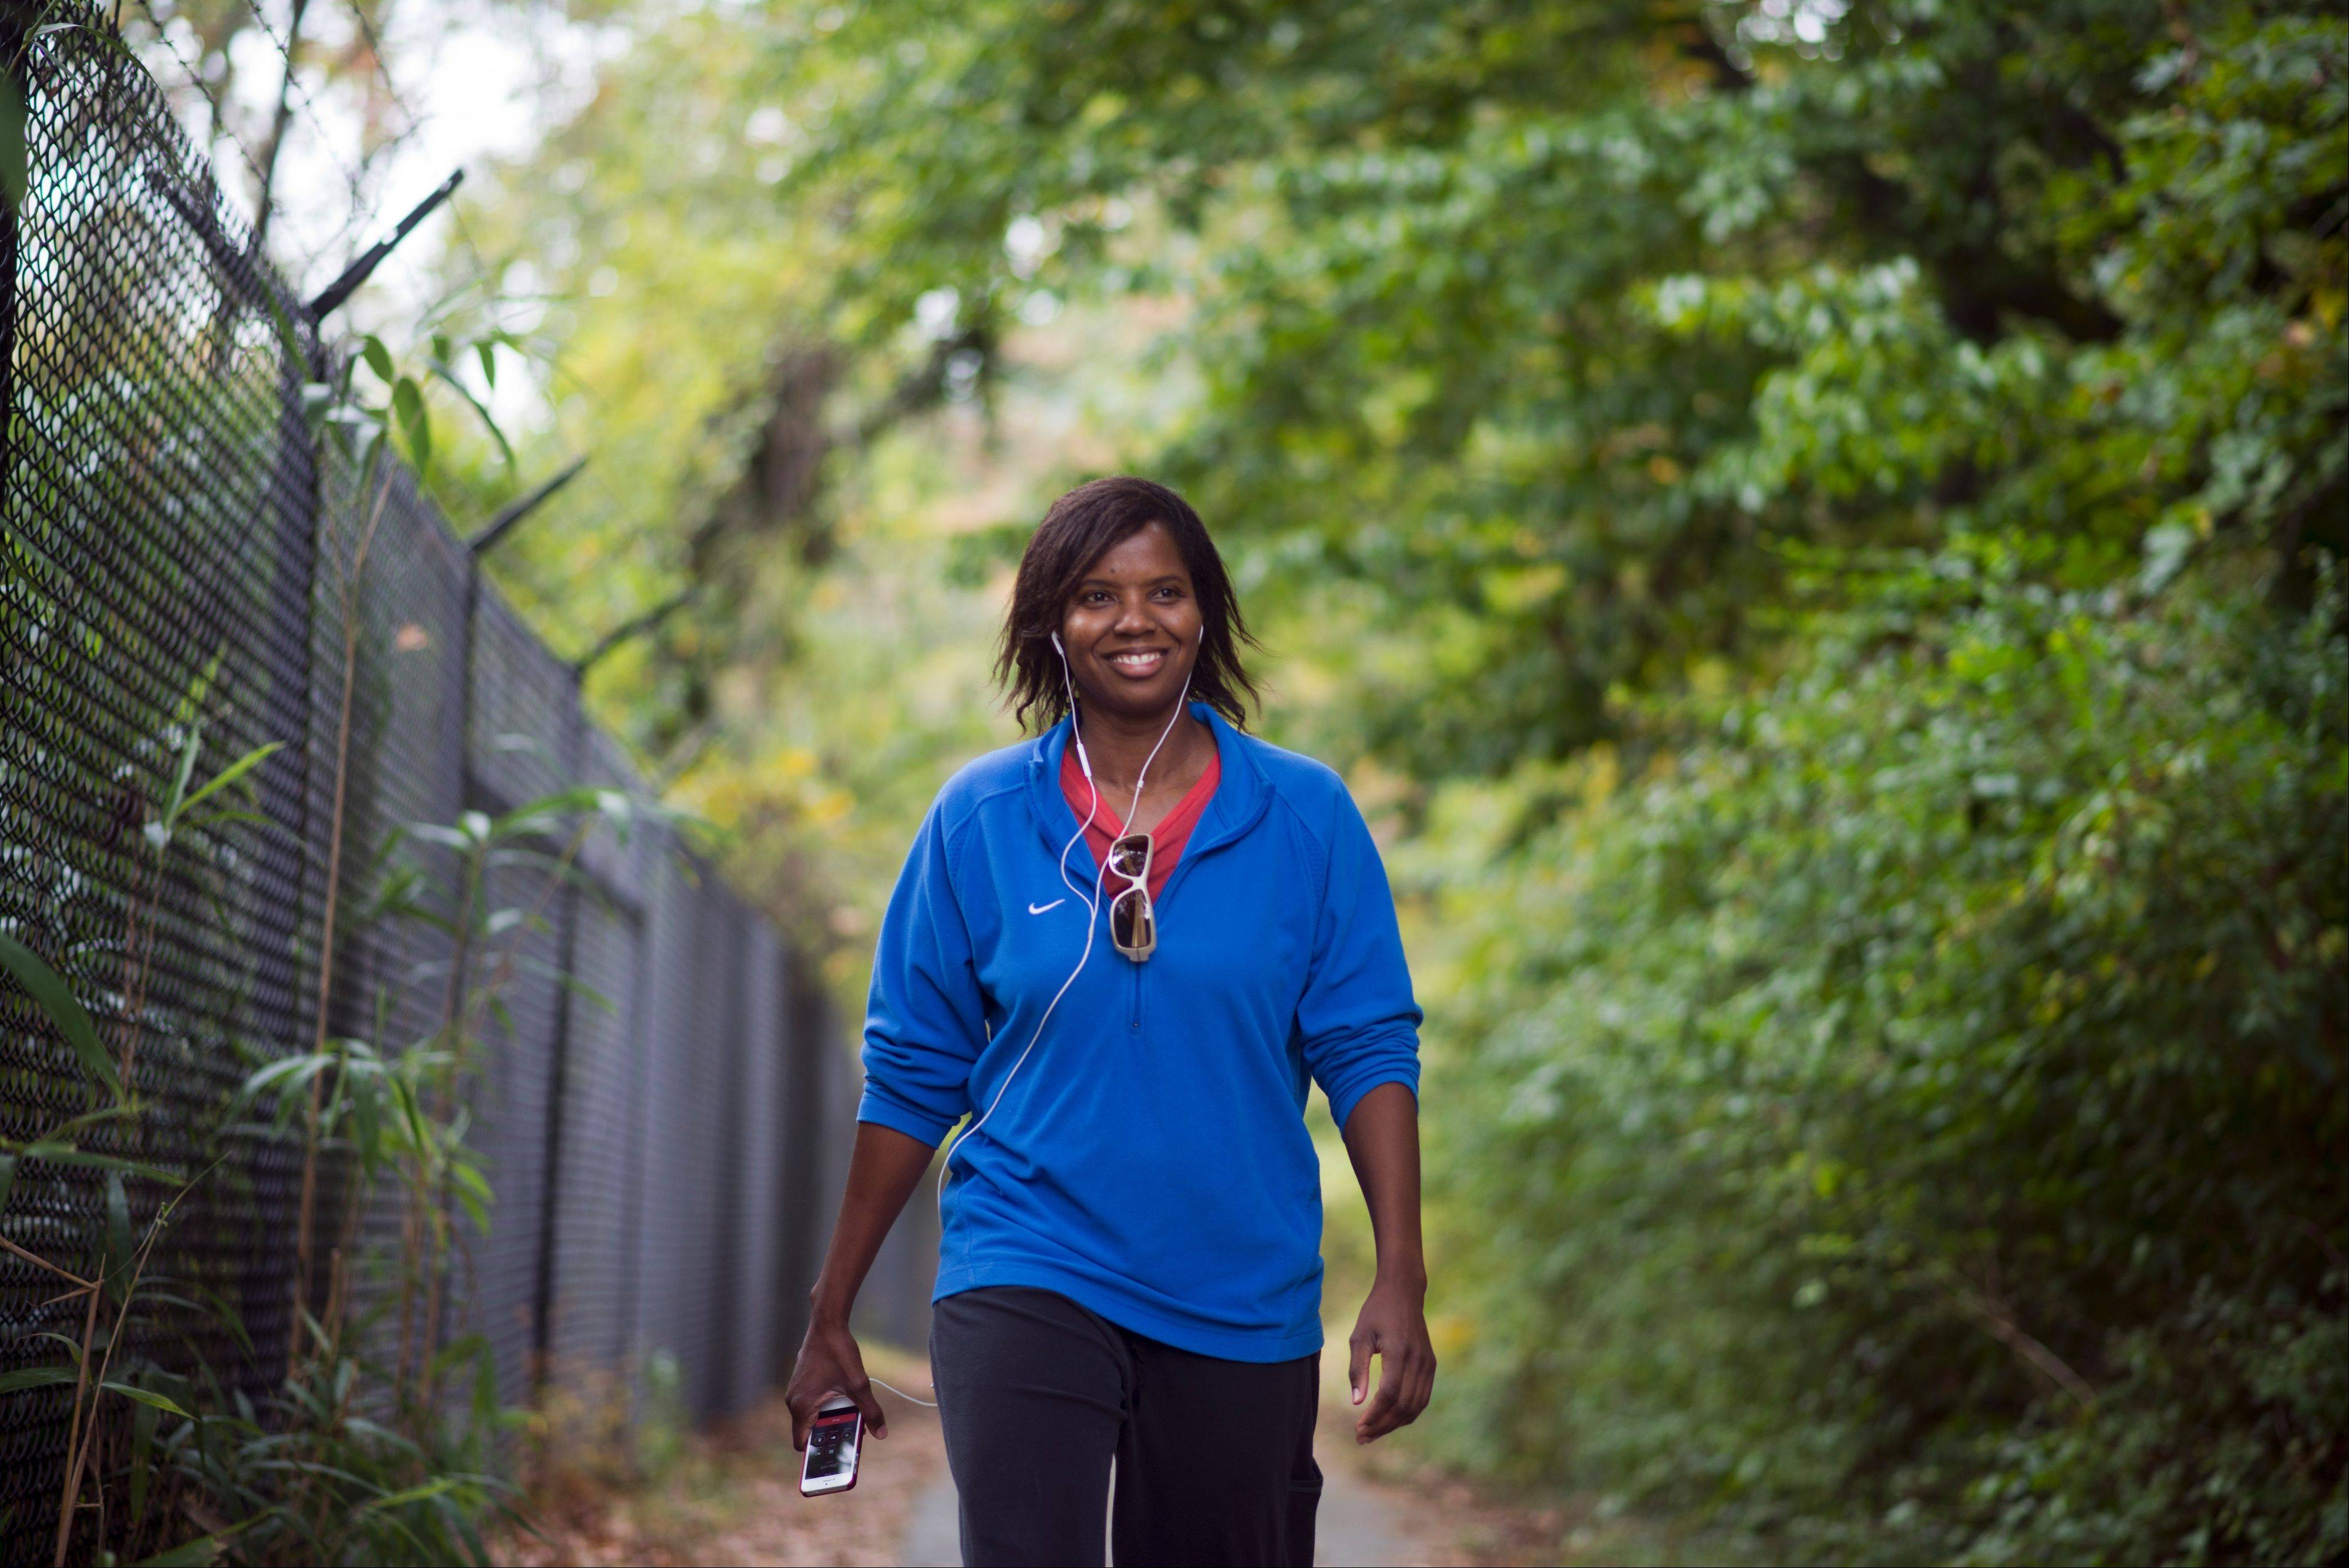 Olympic and World Cup soccer champion Briana Scurry walks in Rock Creek Park in Washington, D.C. on Oct. 22. After suffering a career-ending concussion in 2010, Scurry underwent brain surgery to relieve pressure on her occipital nerve, which ended her chronic headaches.